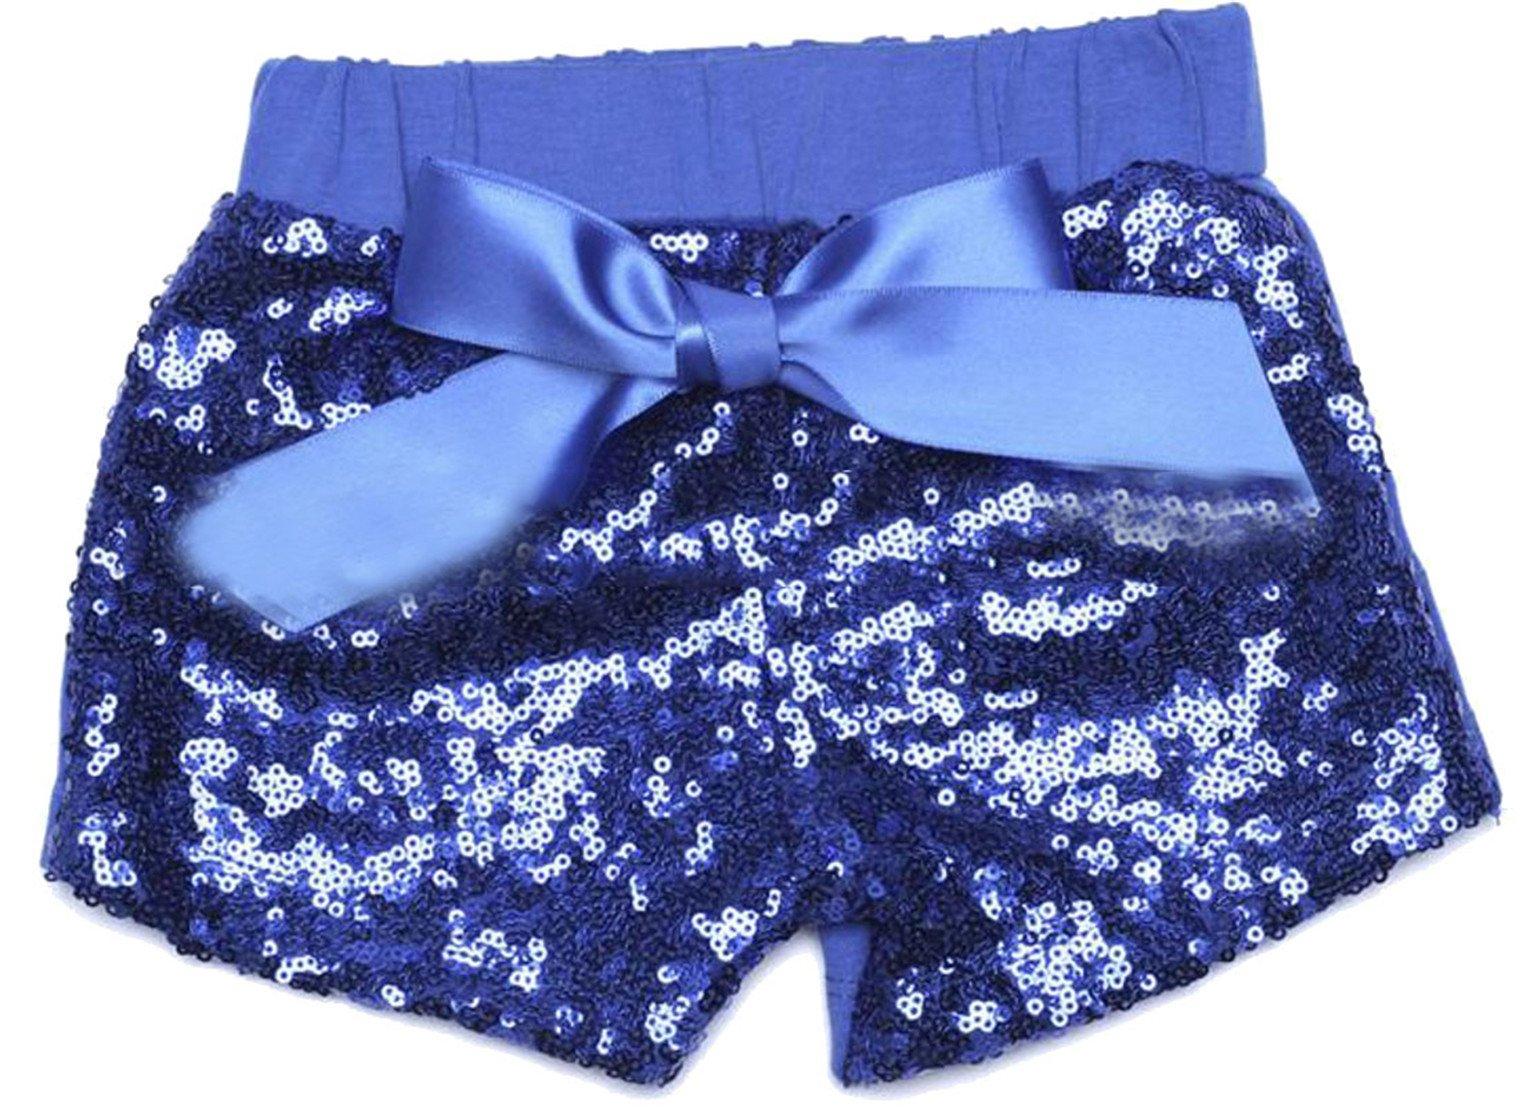 uninukoo-childrens-costumes Unko 3 Pack Girl's Sequins Sports Elastic Waist Bowknot Shorts Jewelry Blue 8T